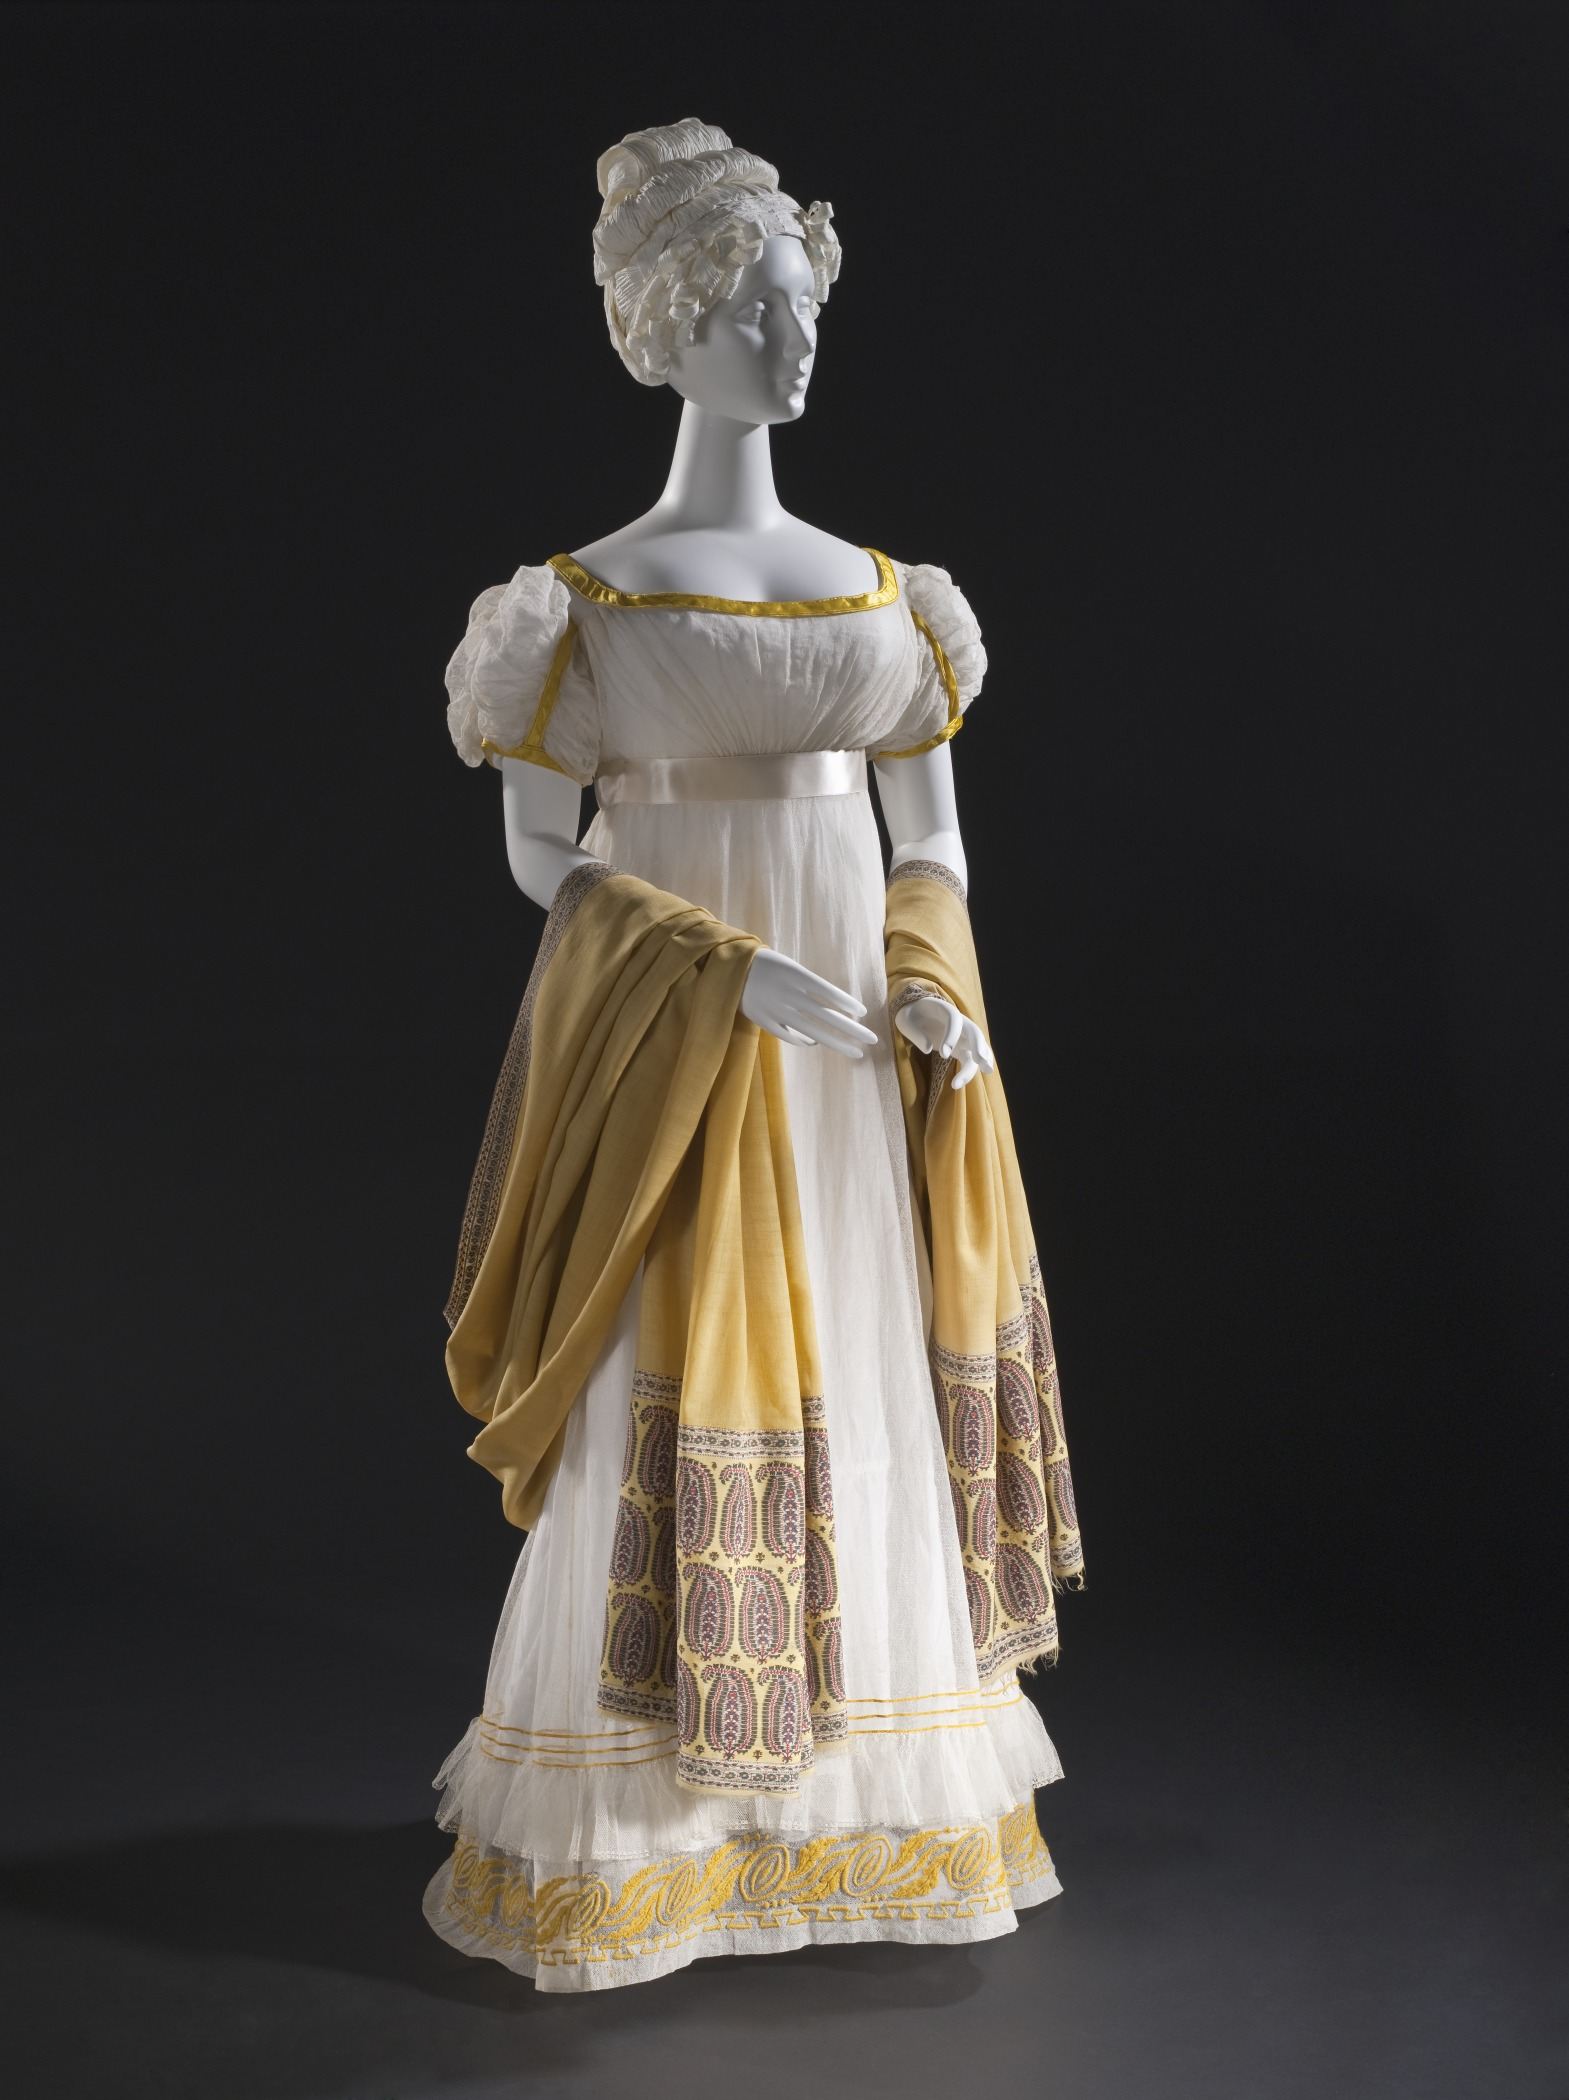 A dress from 1820, made with cotton gauze. Source: Wikimedia Commons.